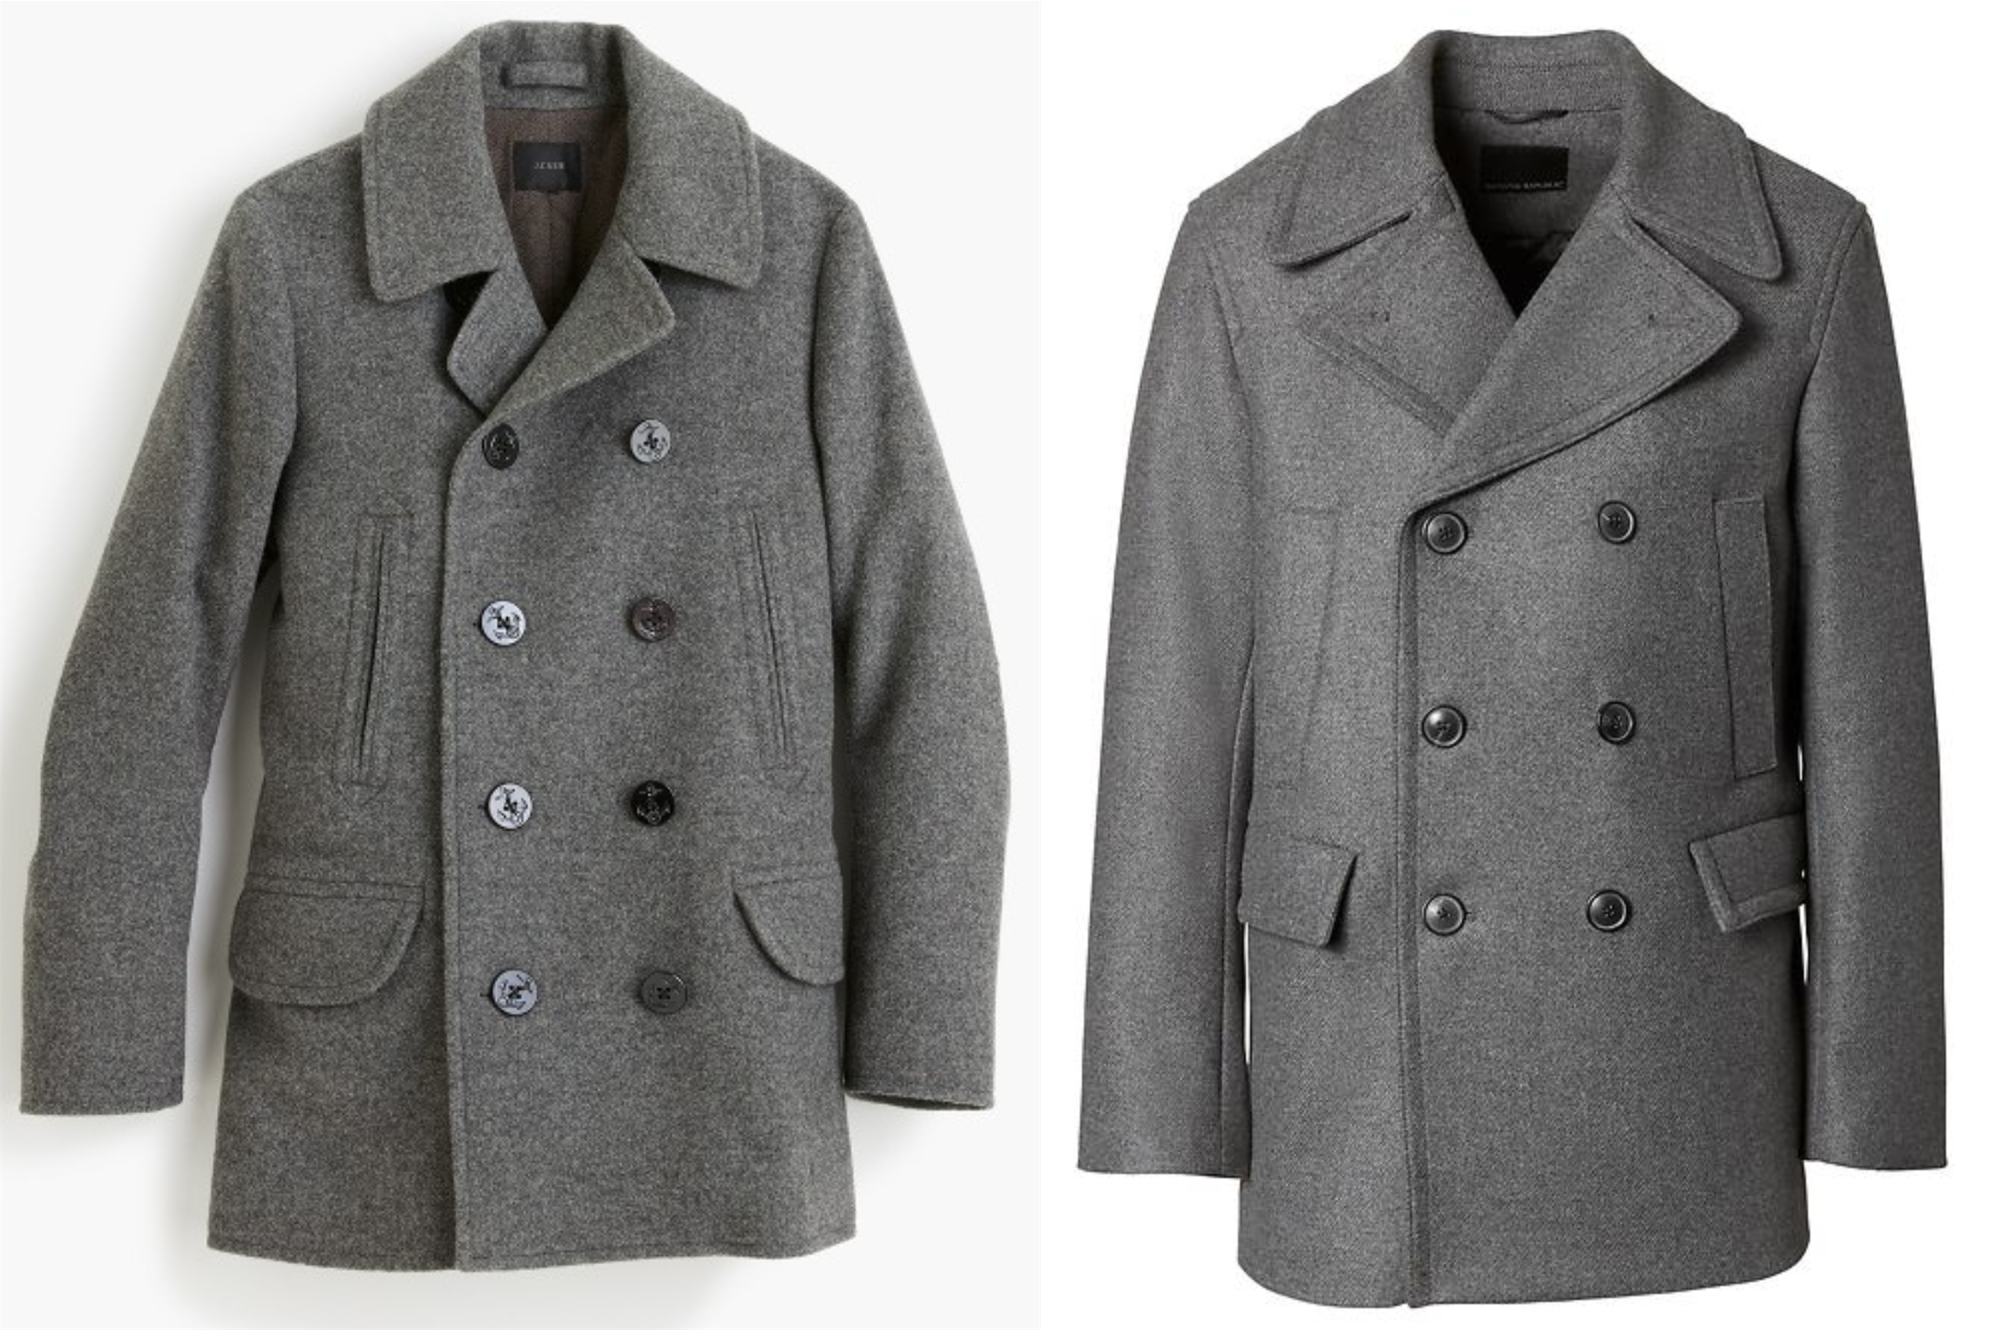 J Crew's website image on left, BR on right